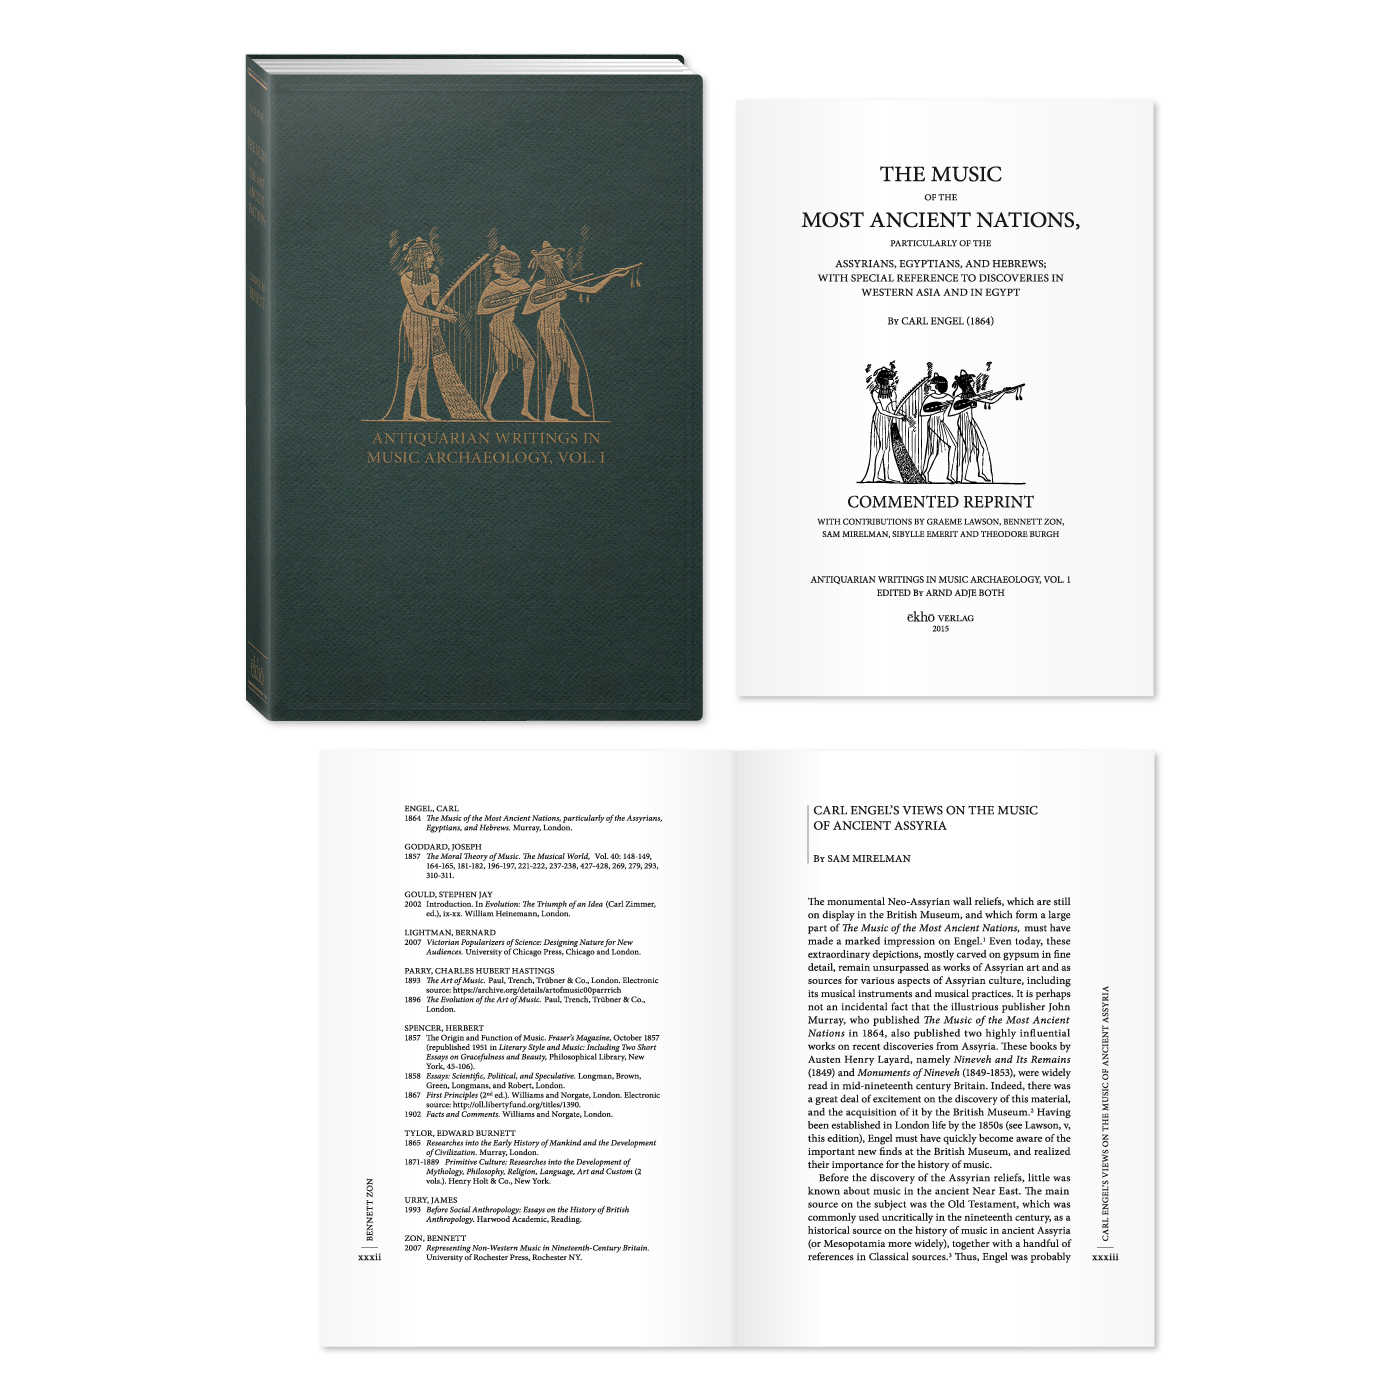 ANTIQUARIAN WRITINGS IN MUSIC ARCHAEOLOGY · Carl Engel · Commented Reprint | www.ekho-verlag.com